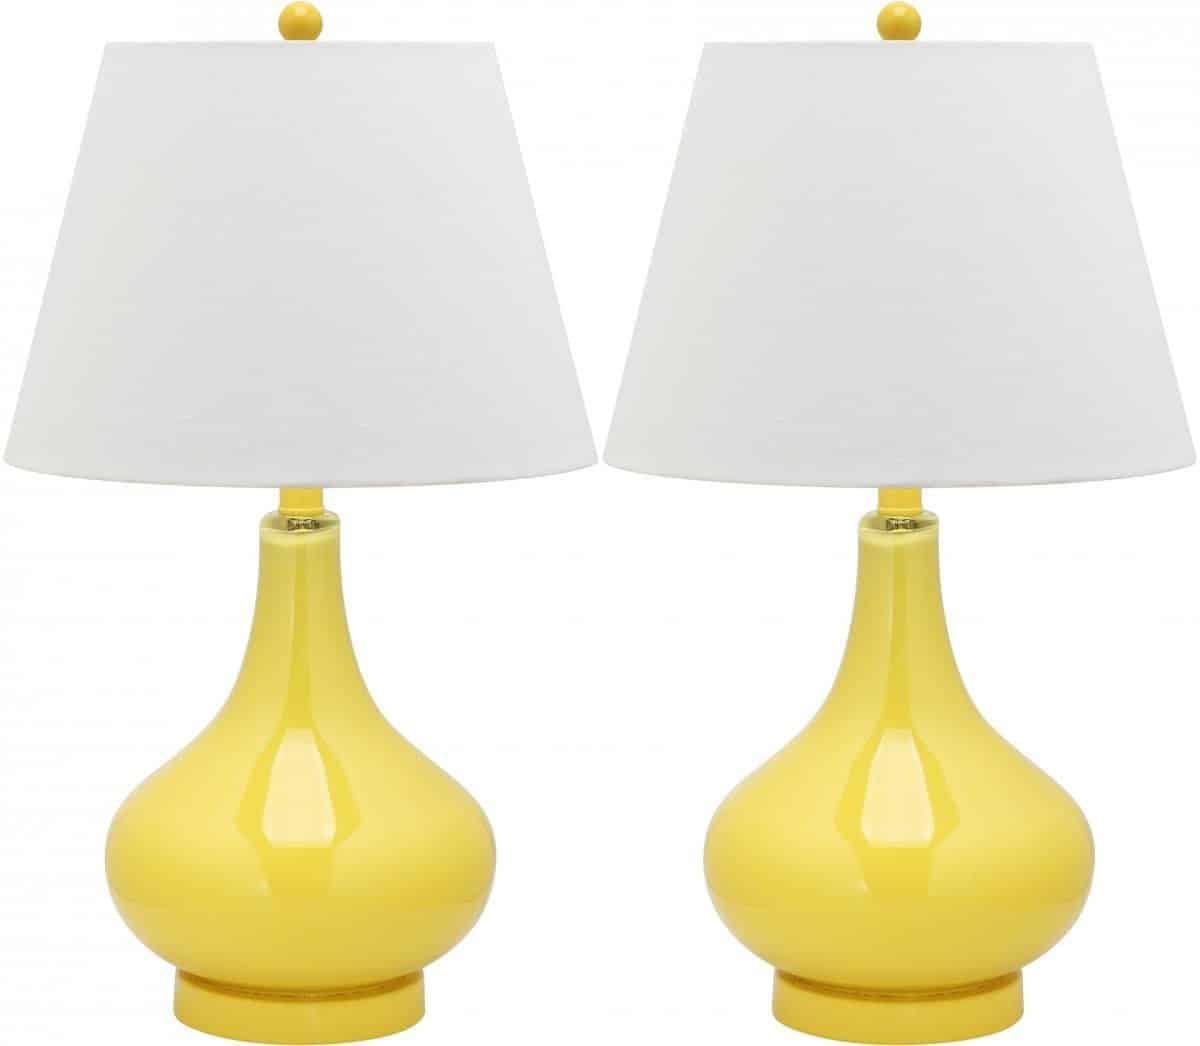 Glass Double Gourd Table Lamp With Yellow Base And White Cotton Lamp Shade.